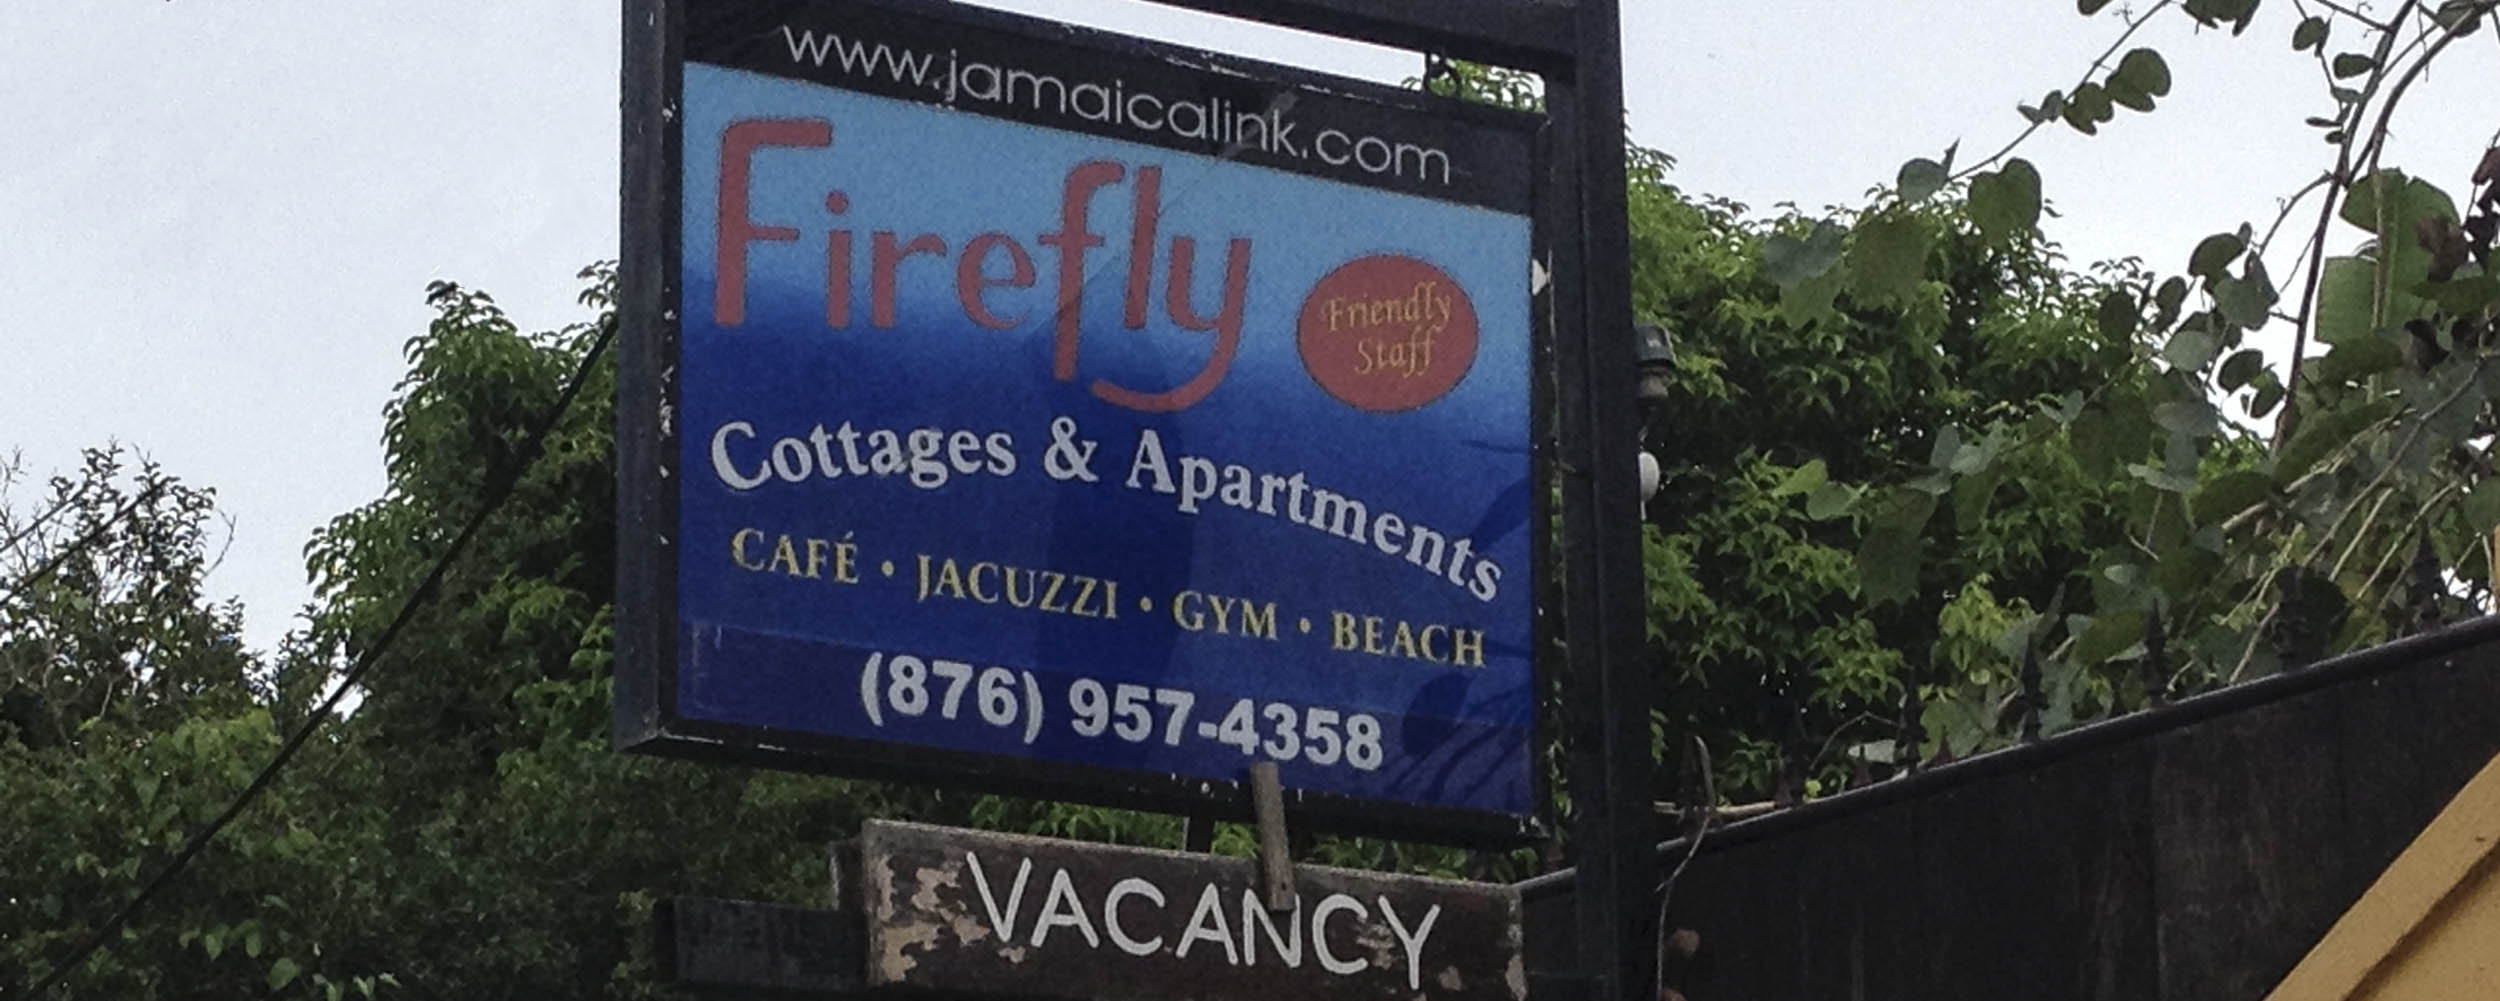 Firefly Cottages - Negril Jamaica